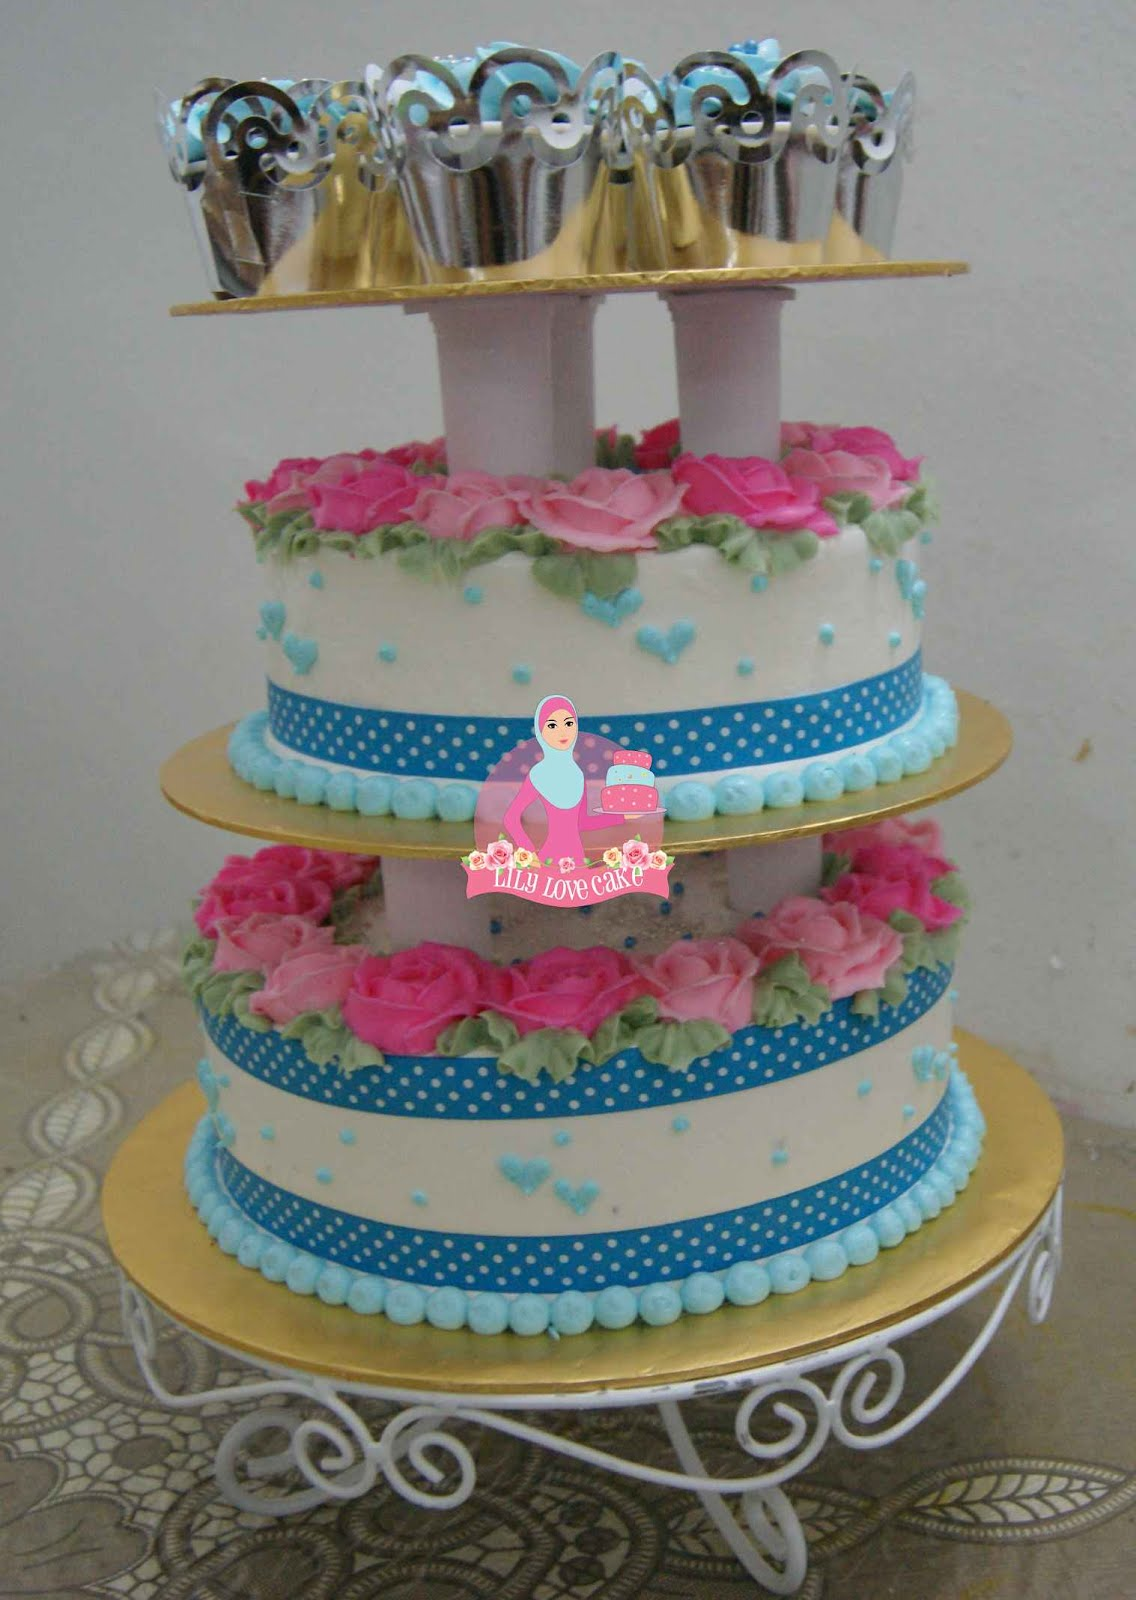 Wedding Cake in Pink & Blue Theme Lily Love Cake